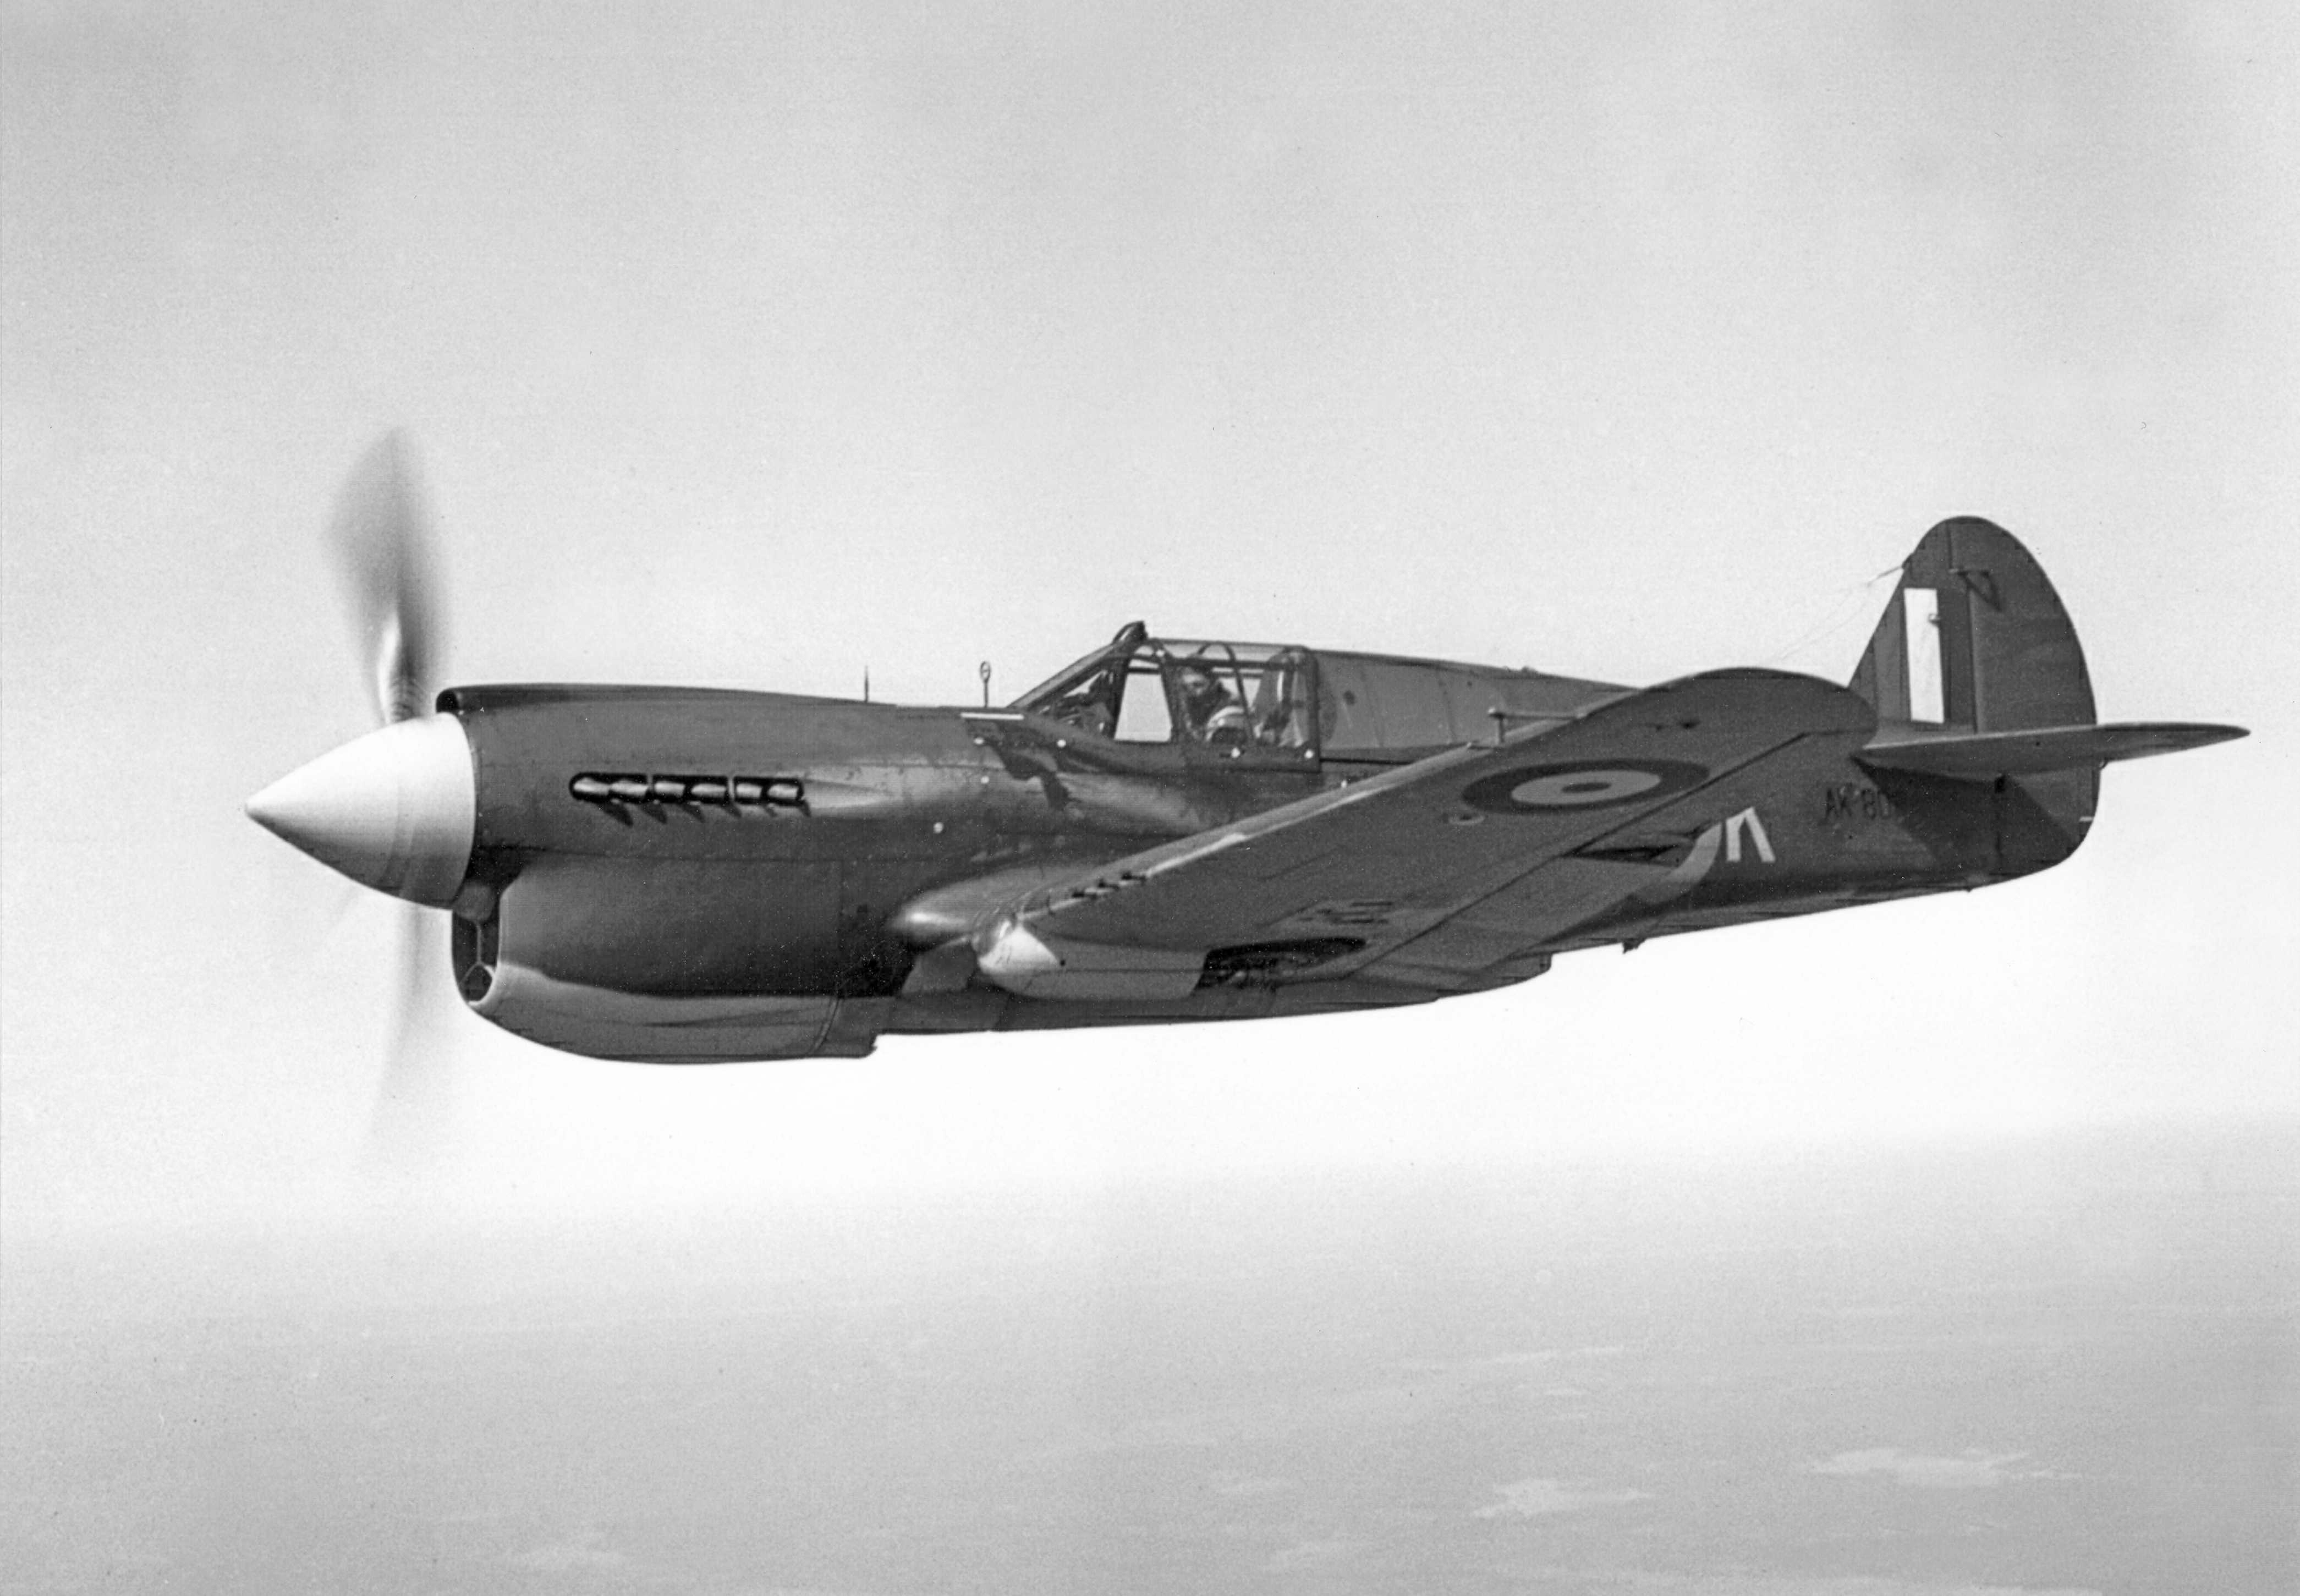 An RCAF Kittyhawk from No. 118 (Fighter) Squadron, located in Dartmouth, Nova Scotia, photographed on April 4, 1942. PHOTO: DND Archives, PL-8346